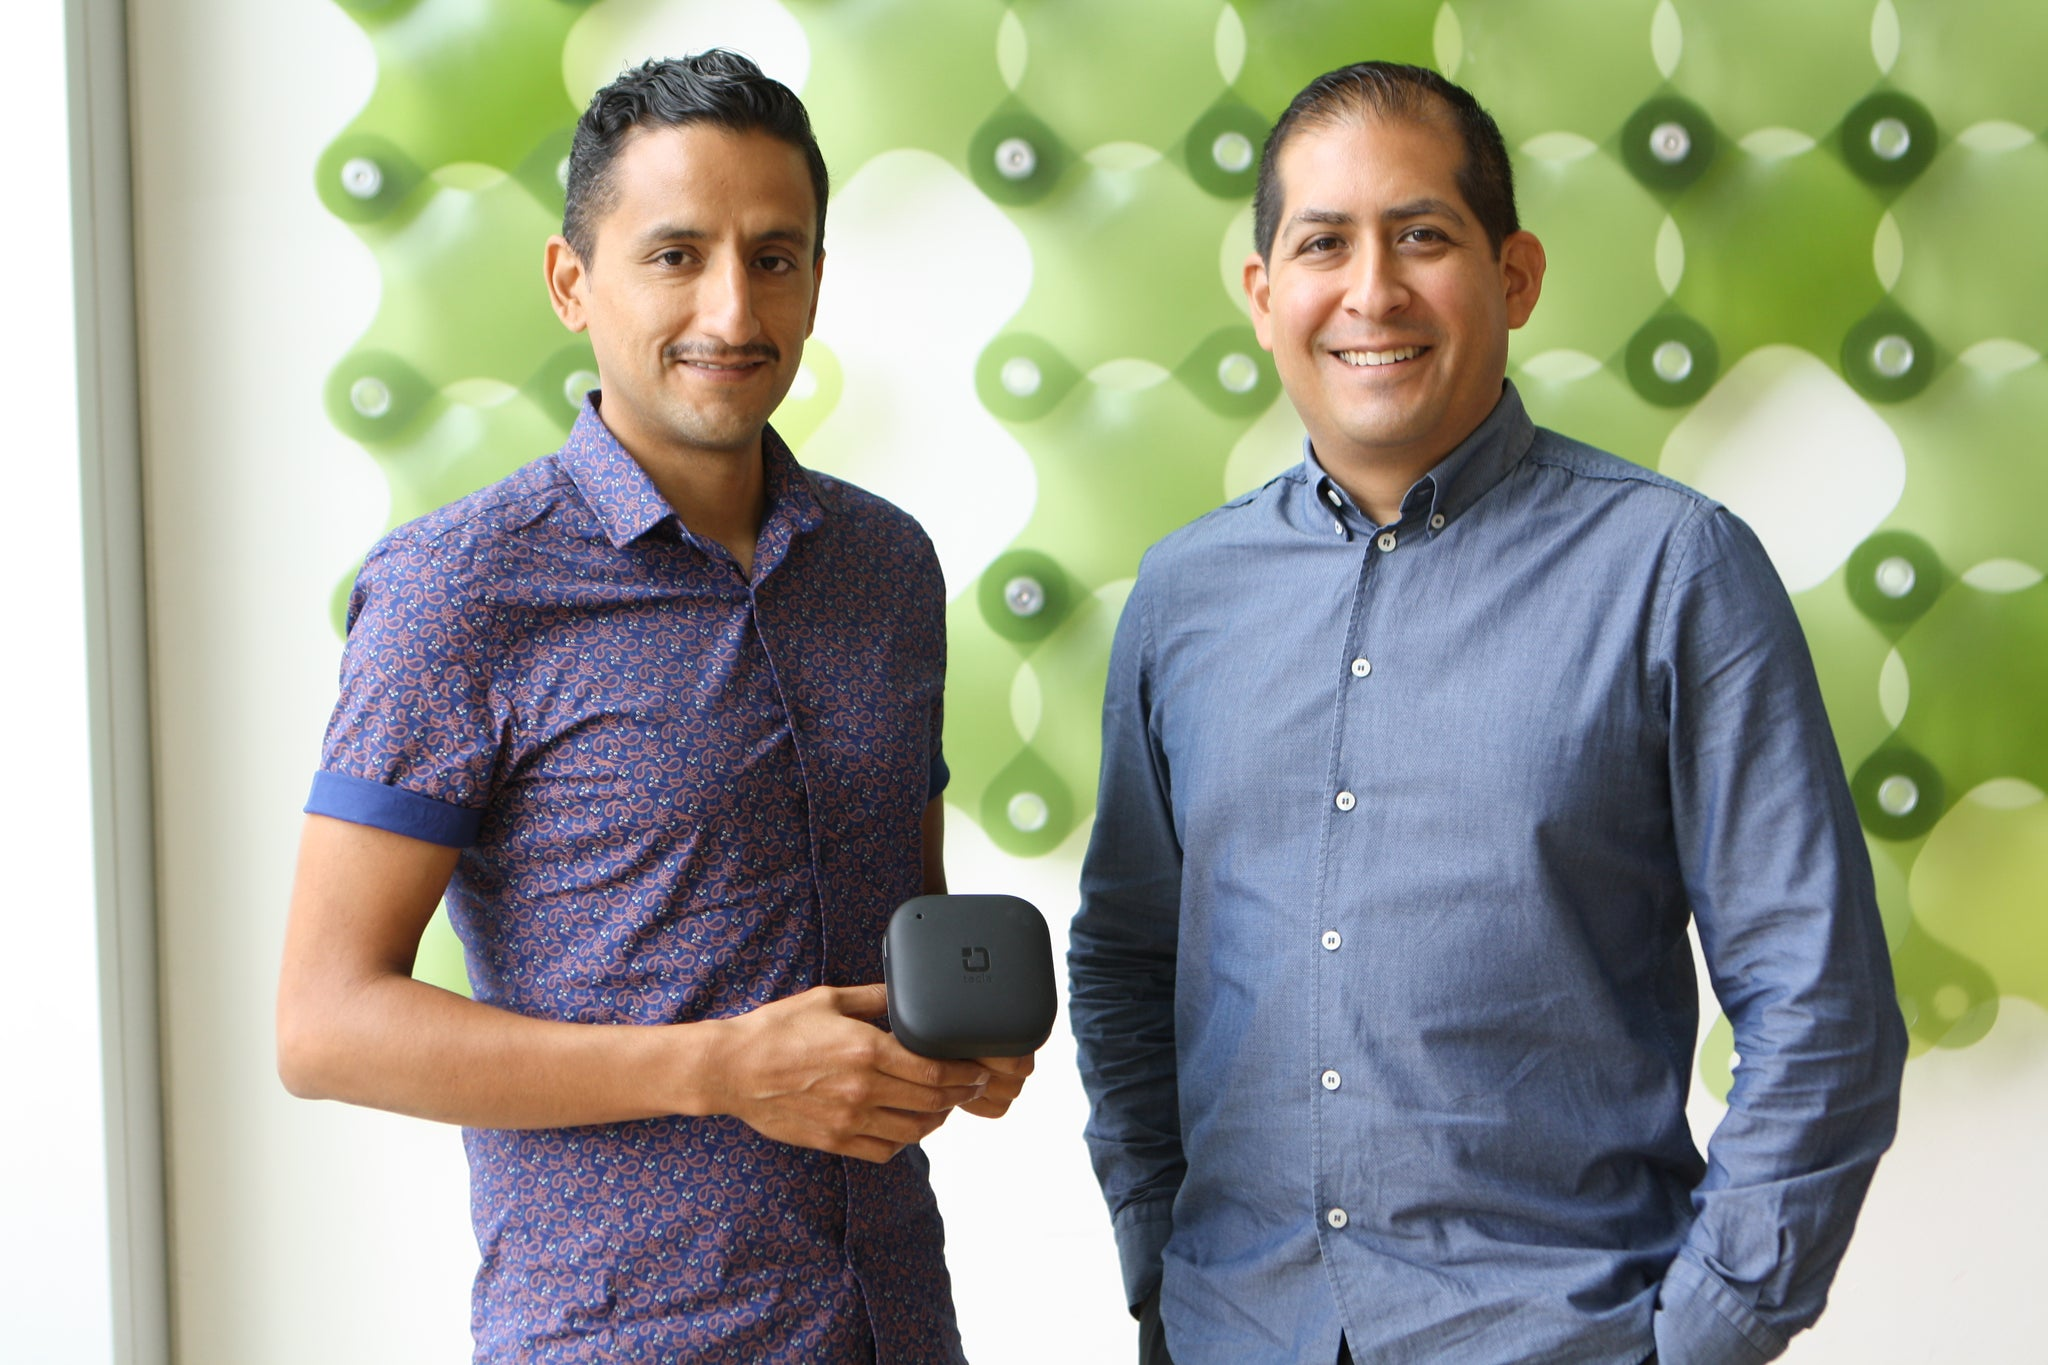 Jorge and Mauricio portrait shot standing in front of green background